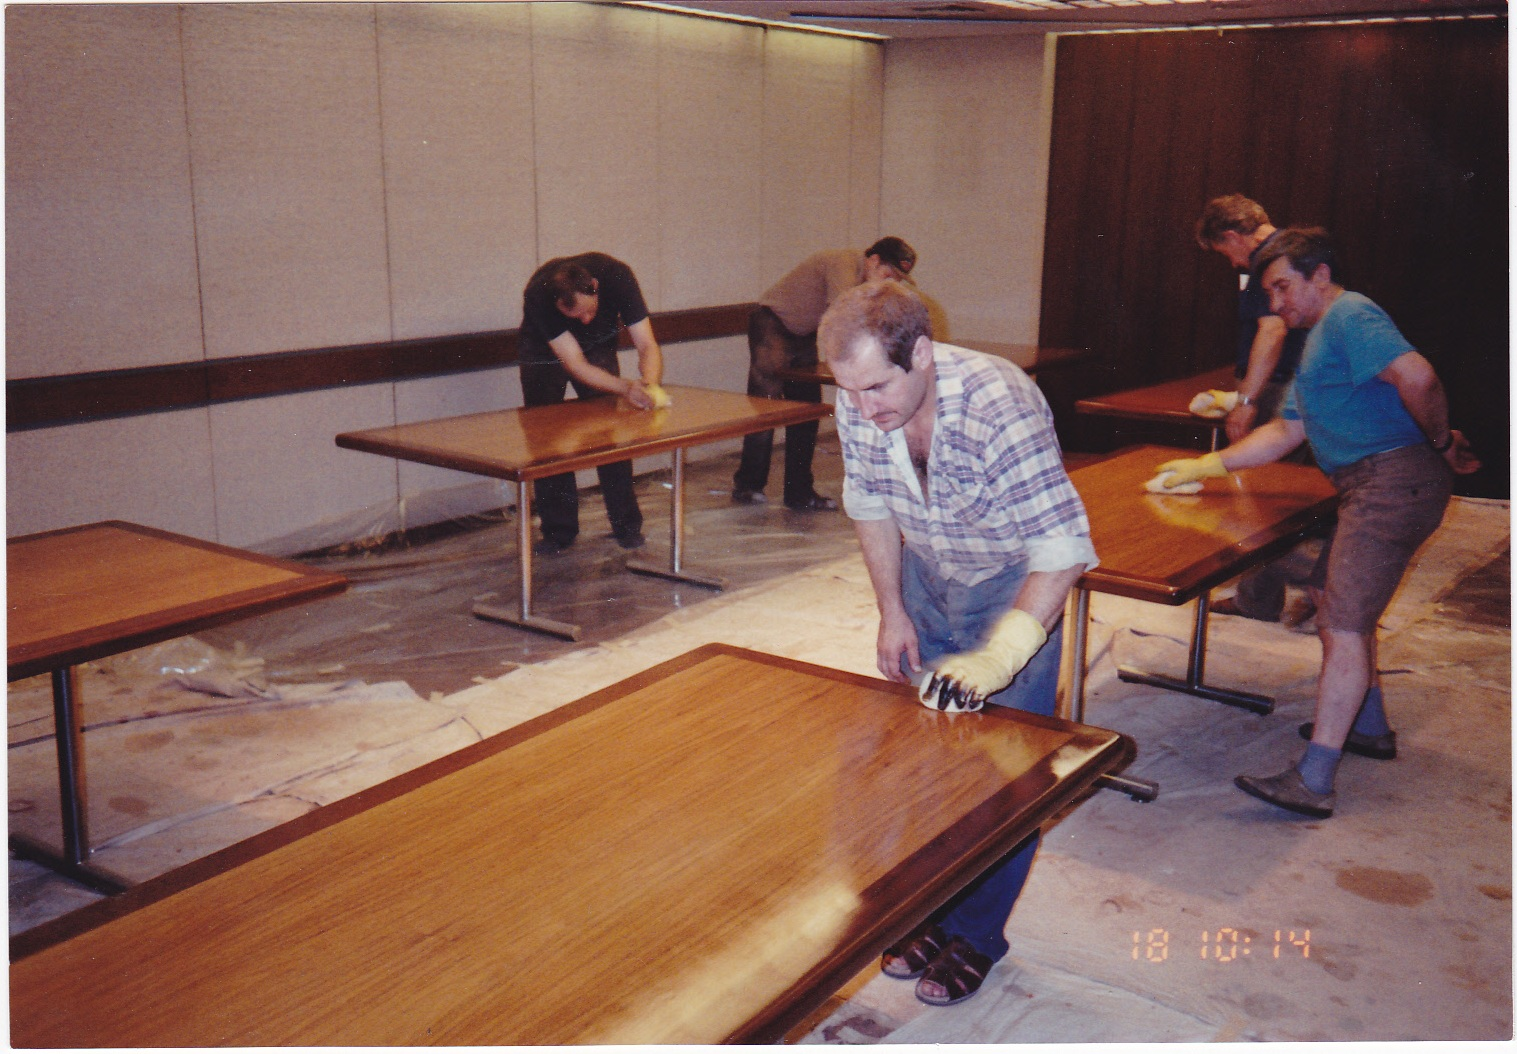 Conference room tables being refinished on-site